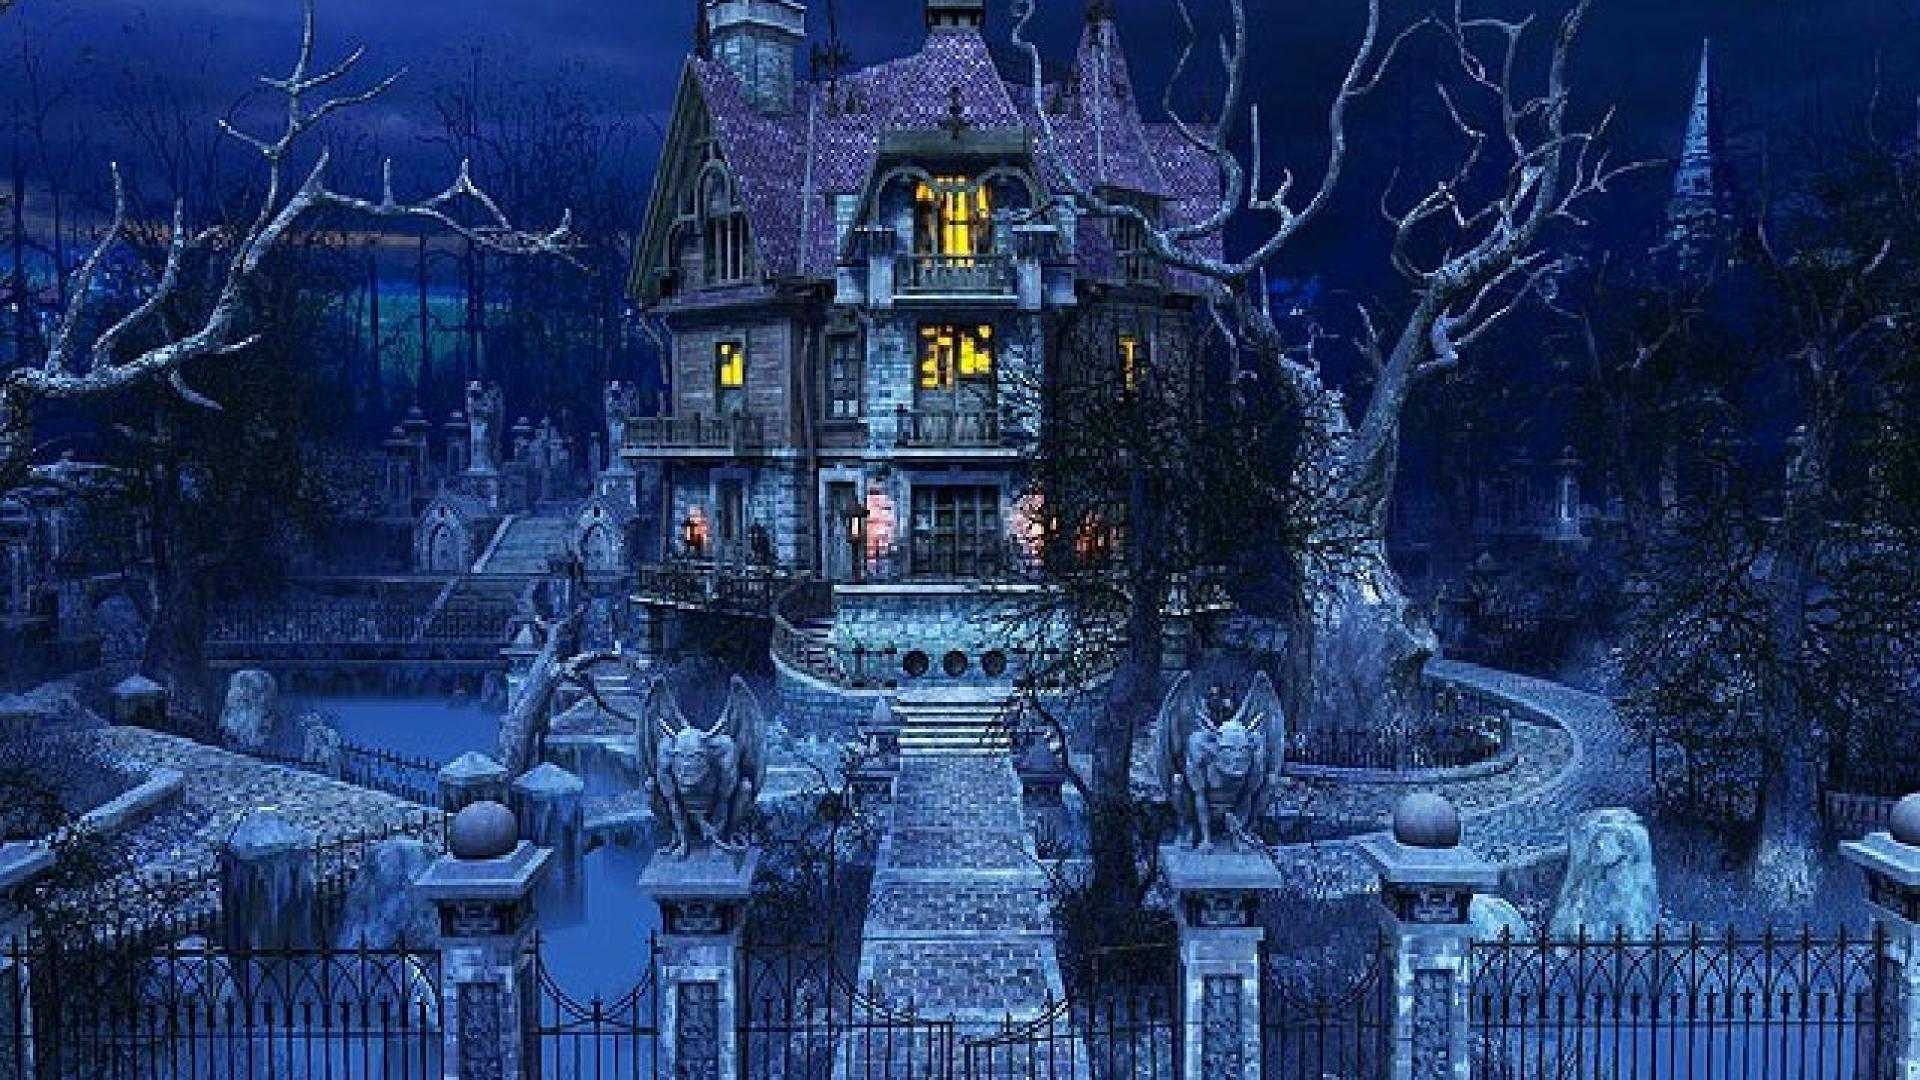 Haunted Mansion Desktop Wallpaper The Haunted Mansion Wa...